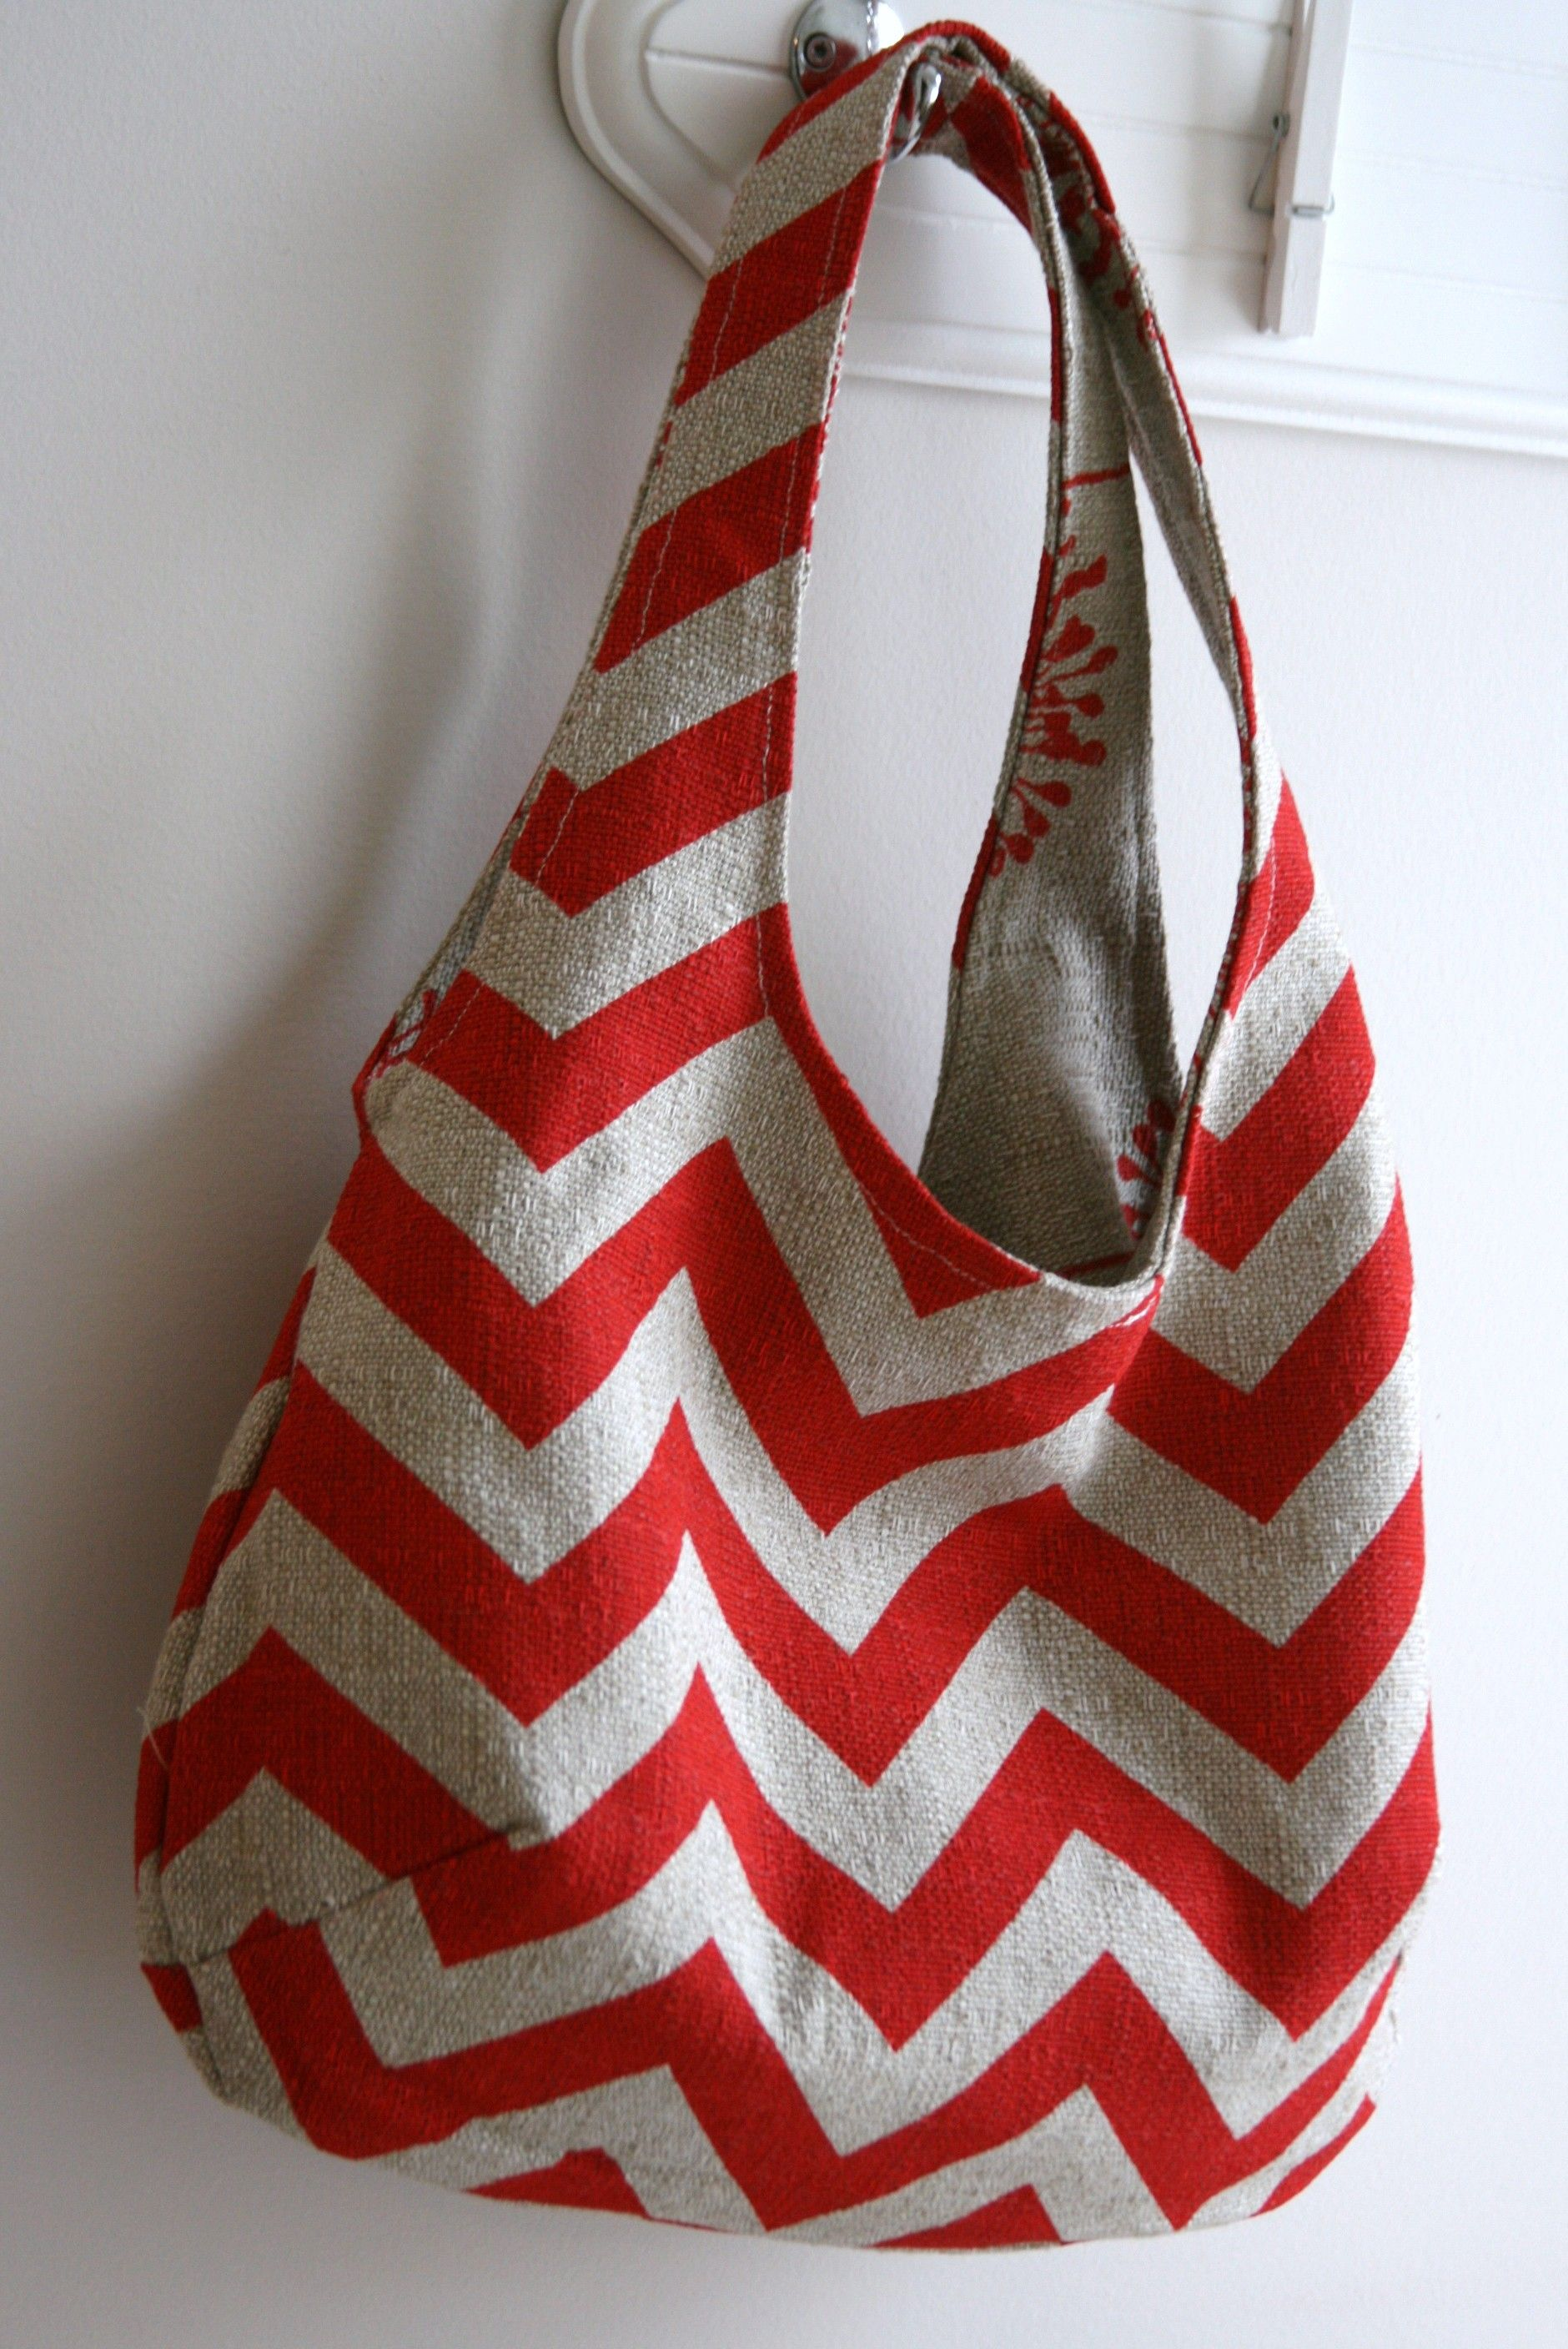 Reversible Bags Make One You Can Do That